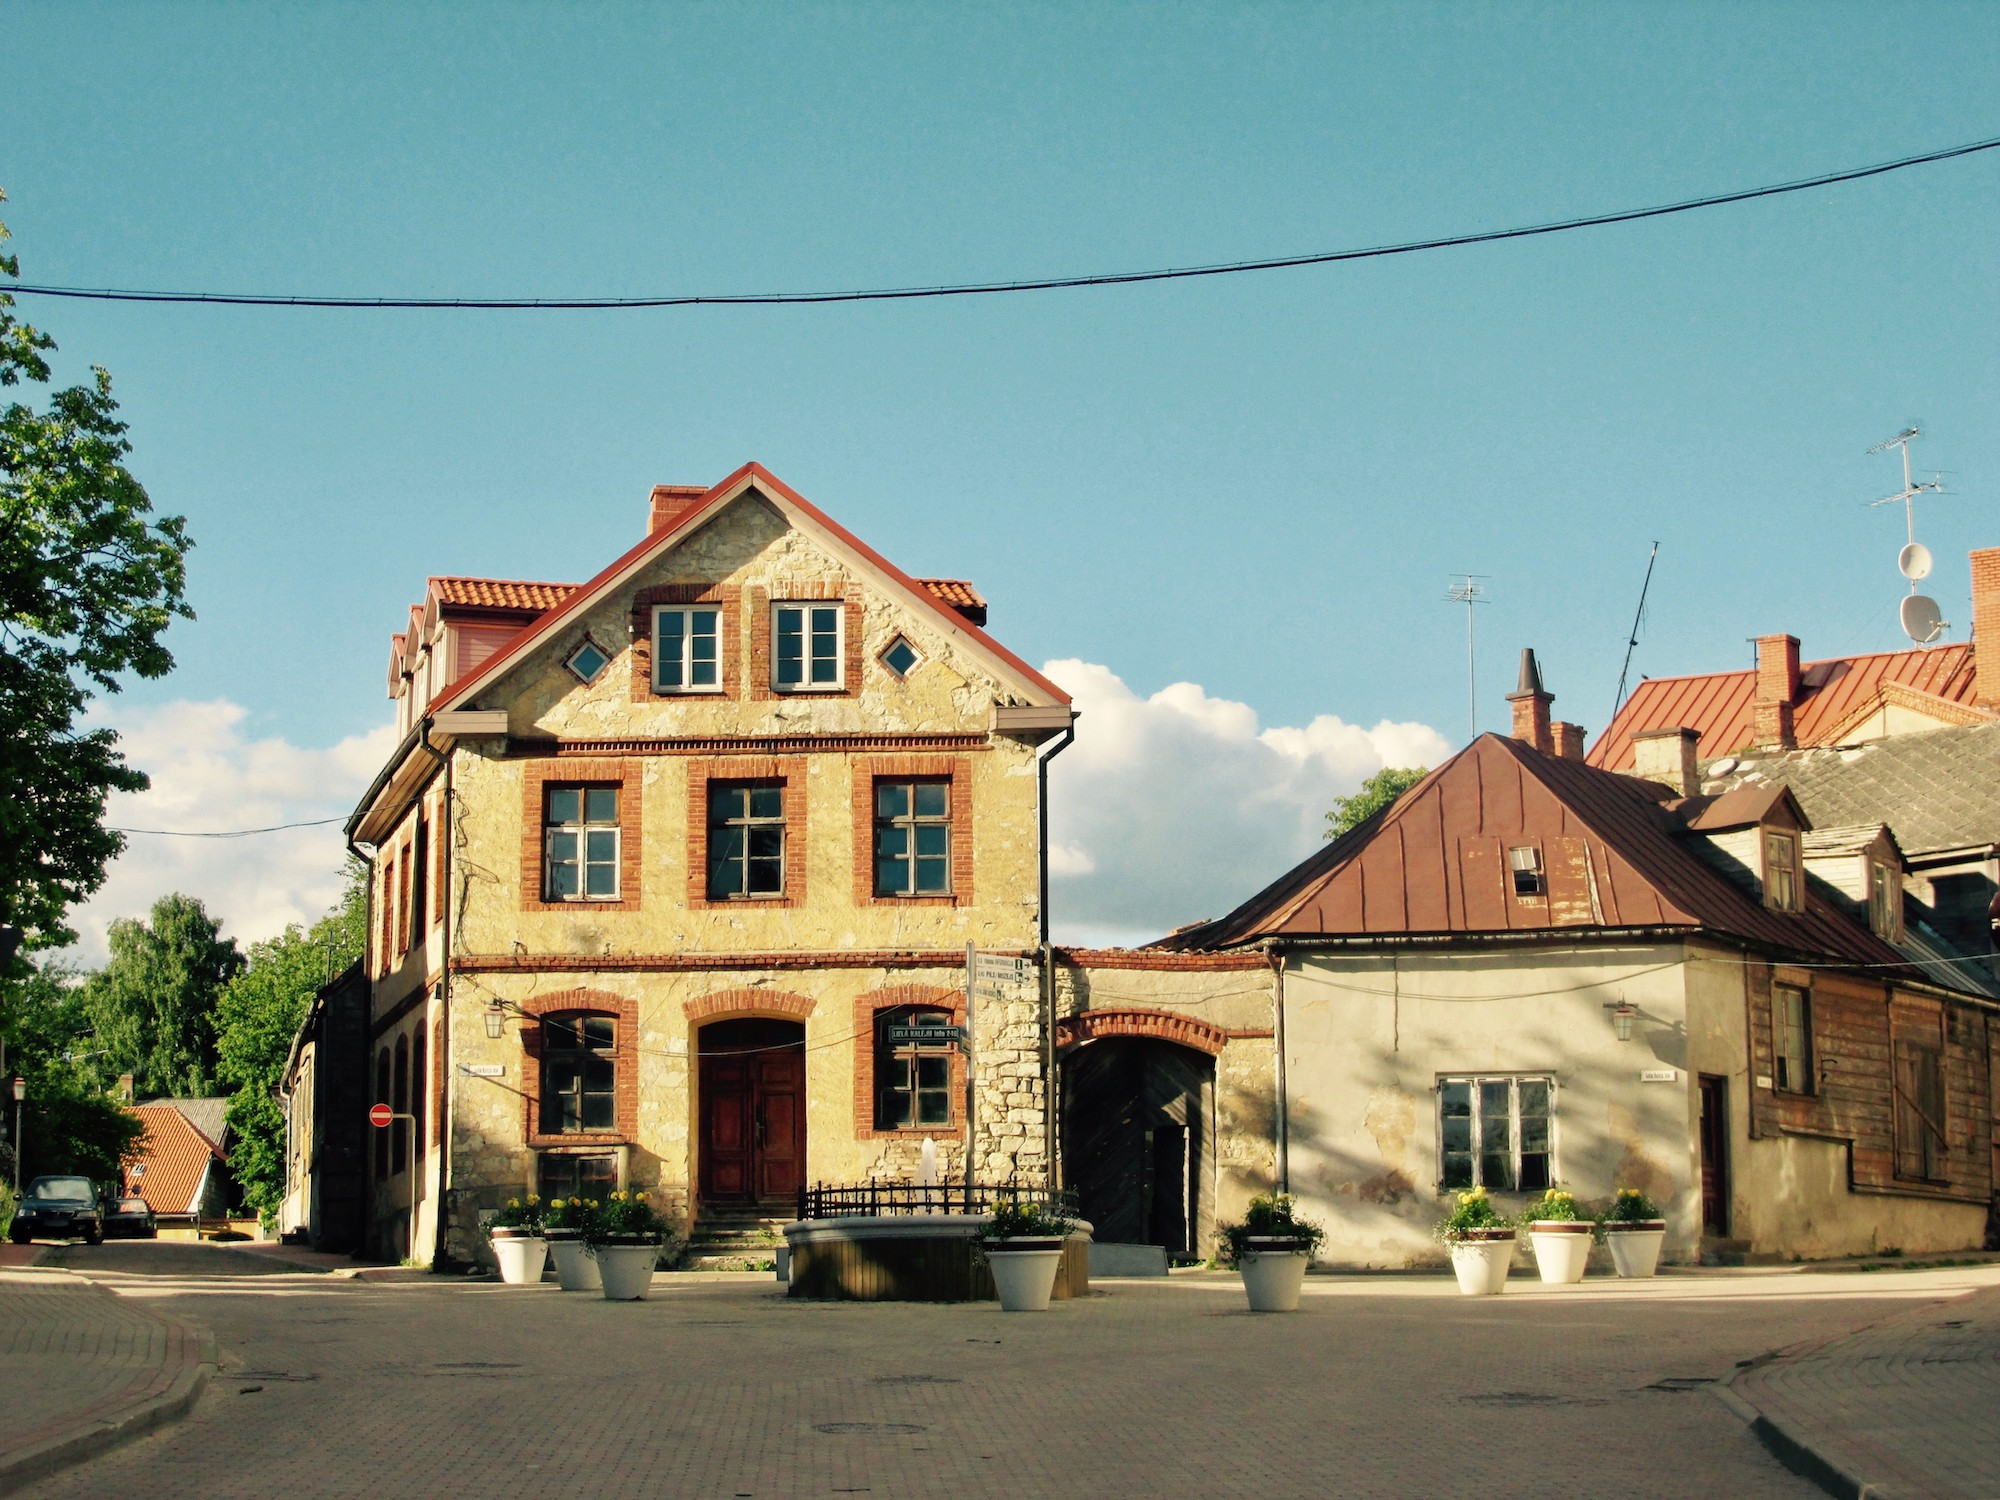 Sunny day in the Old Town of Cesis.